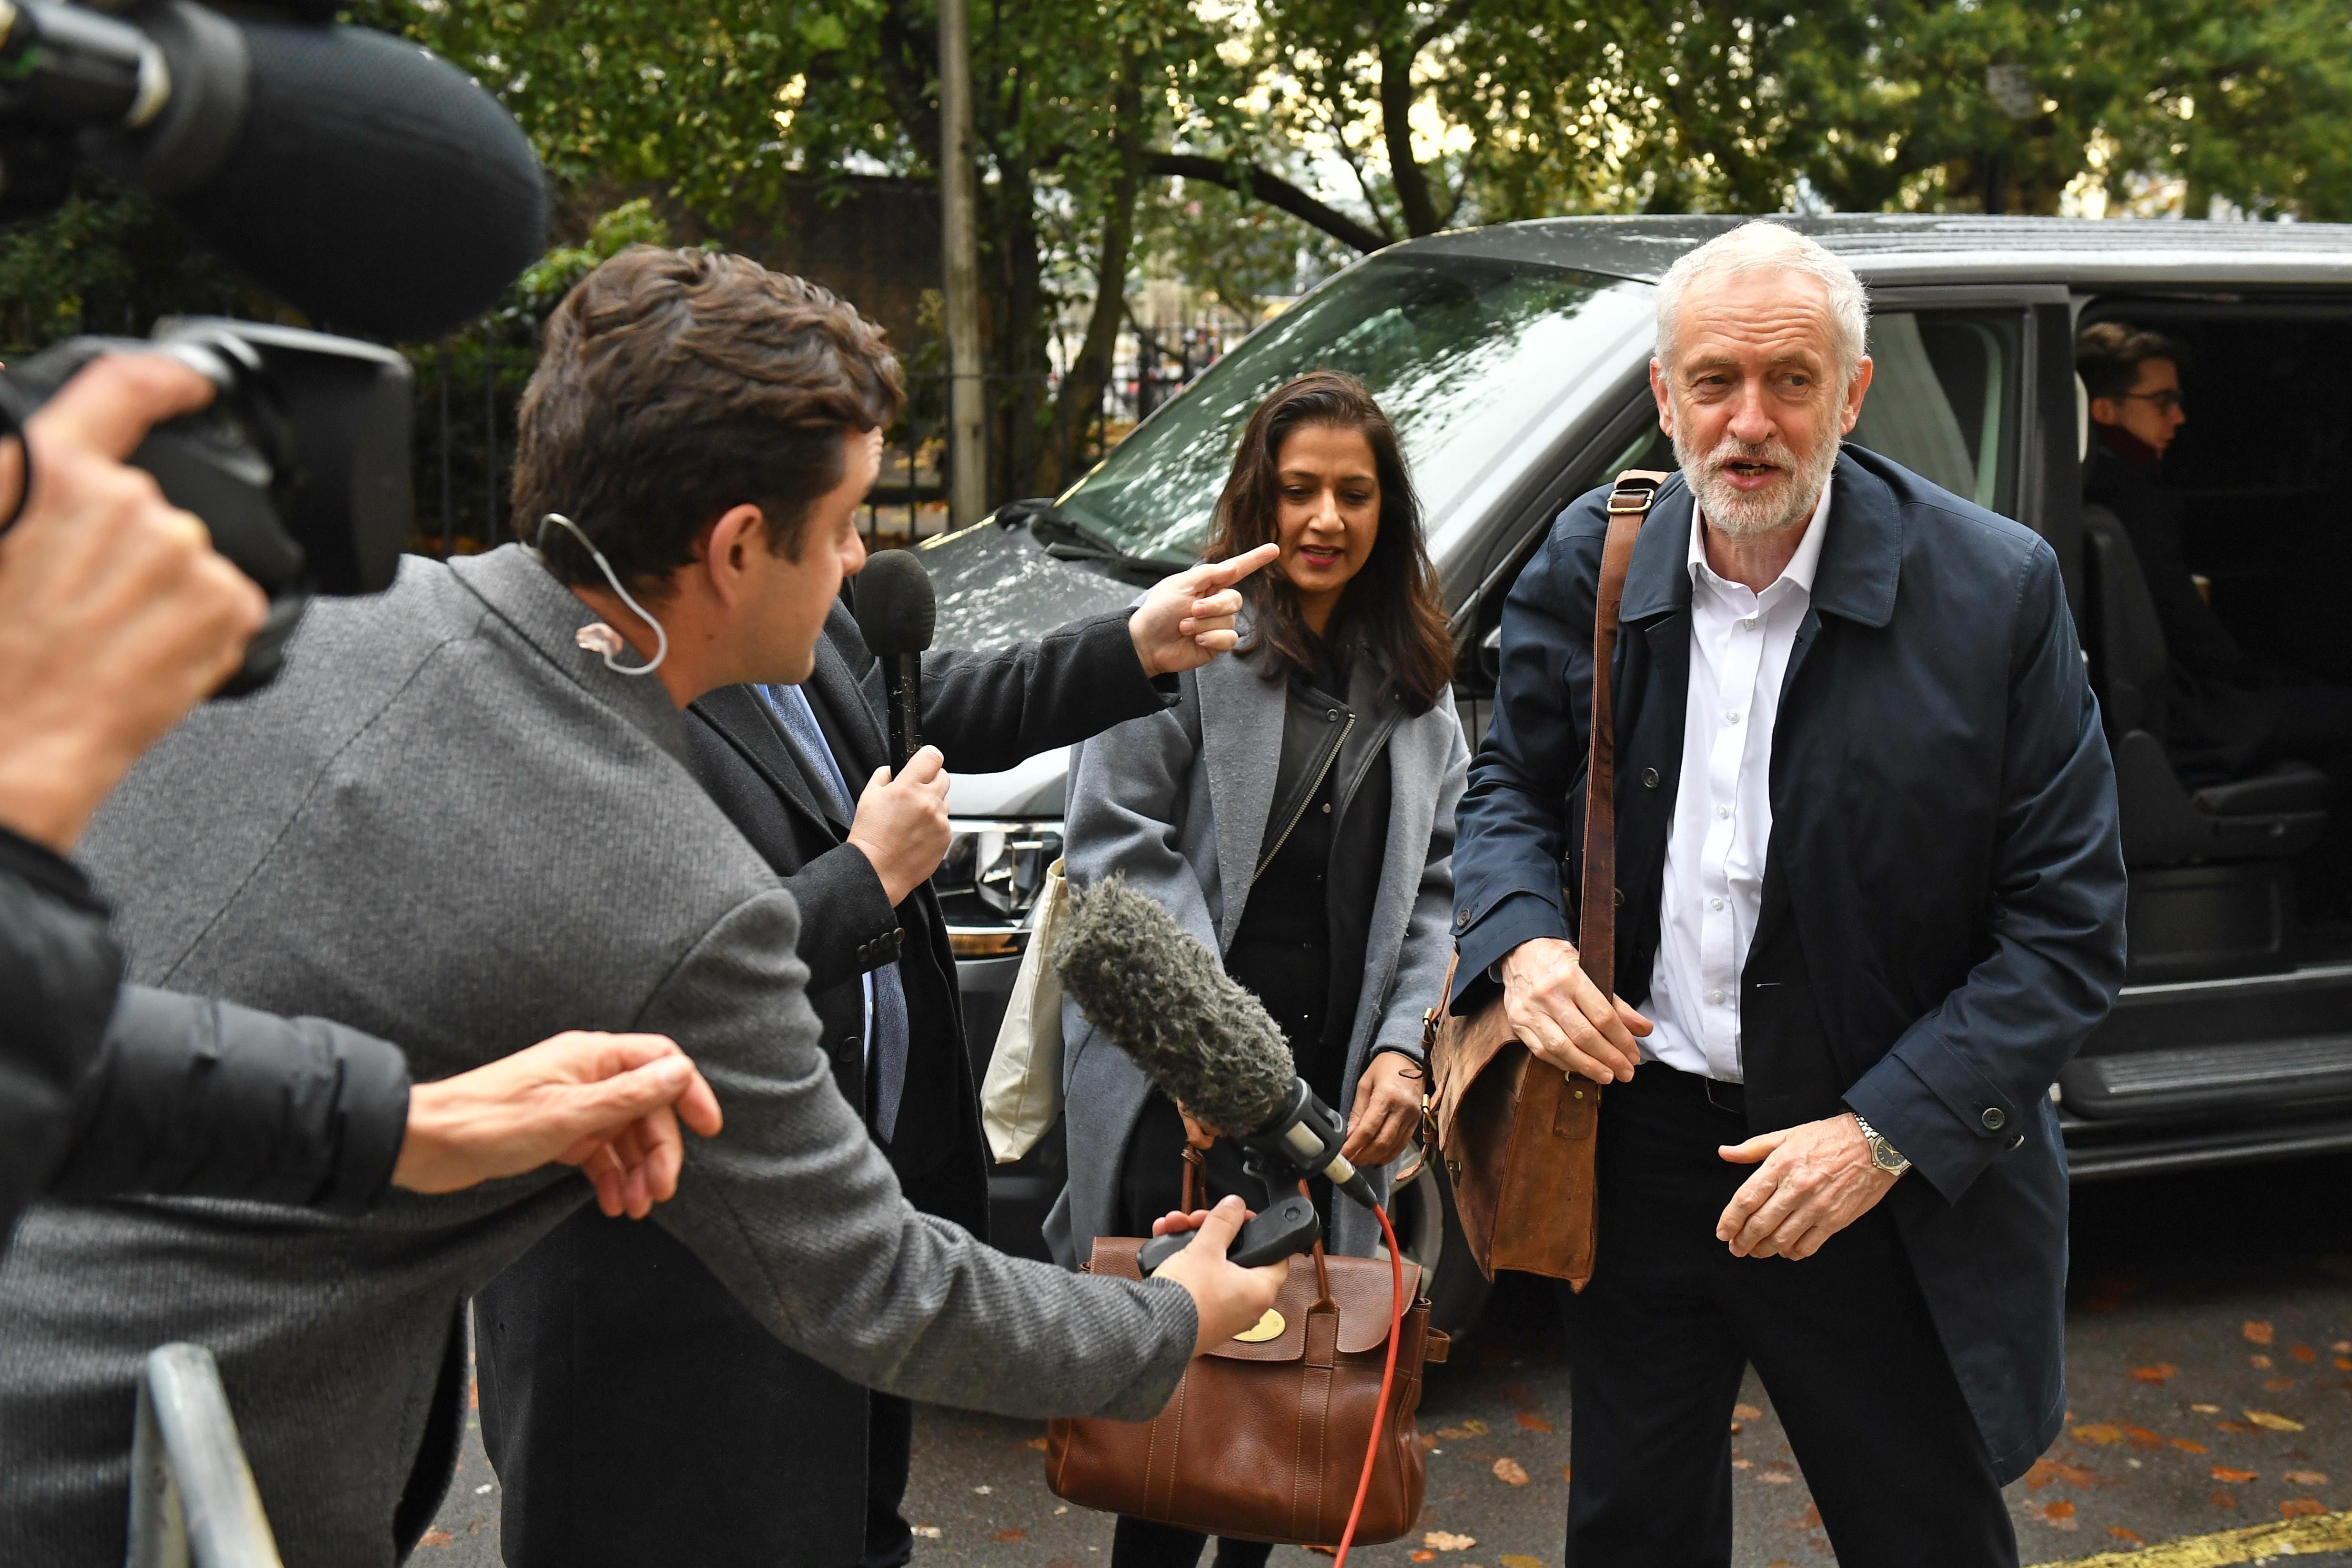 In Pictures: Boris goes door-knocking as Labour holds manifesto meeting